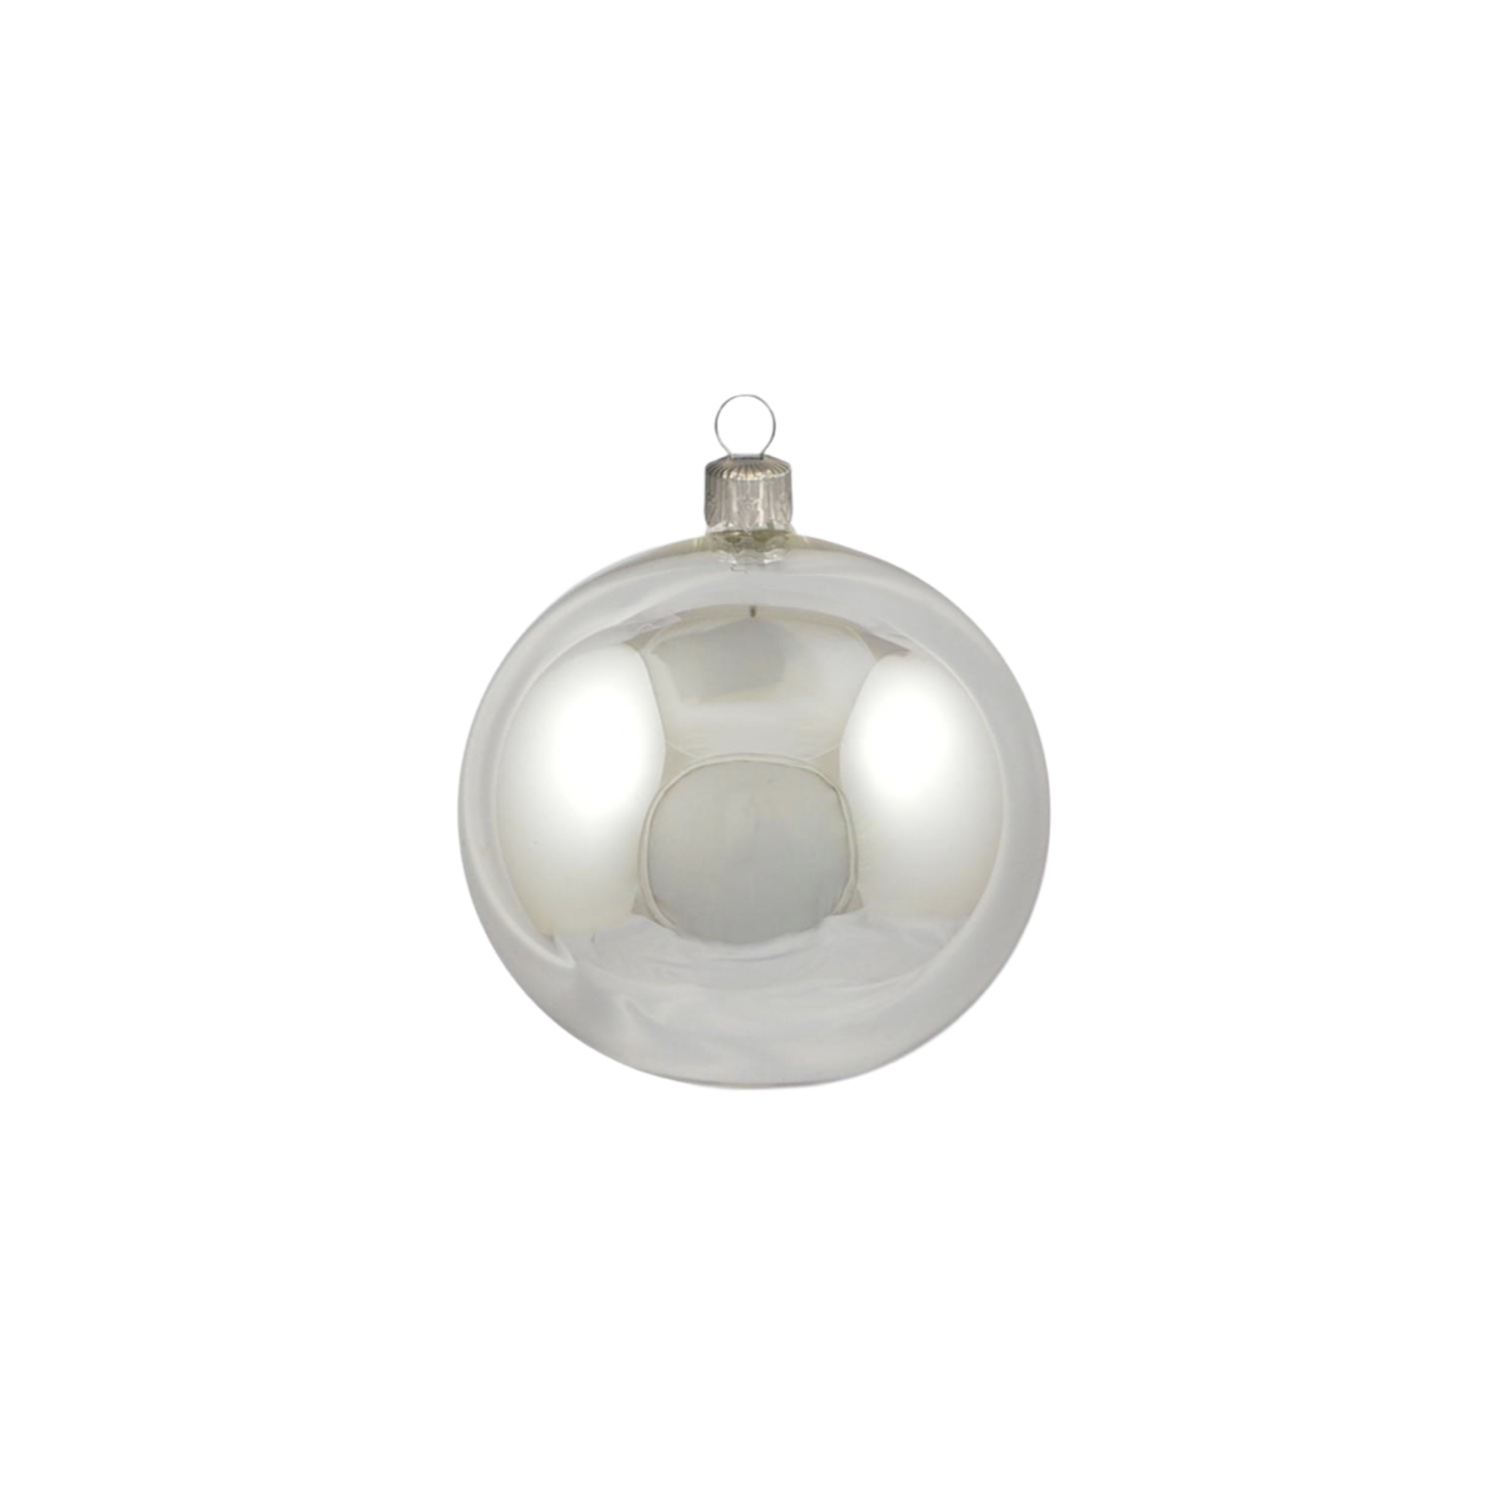 2.5in Shiny Silver Polish Bauble